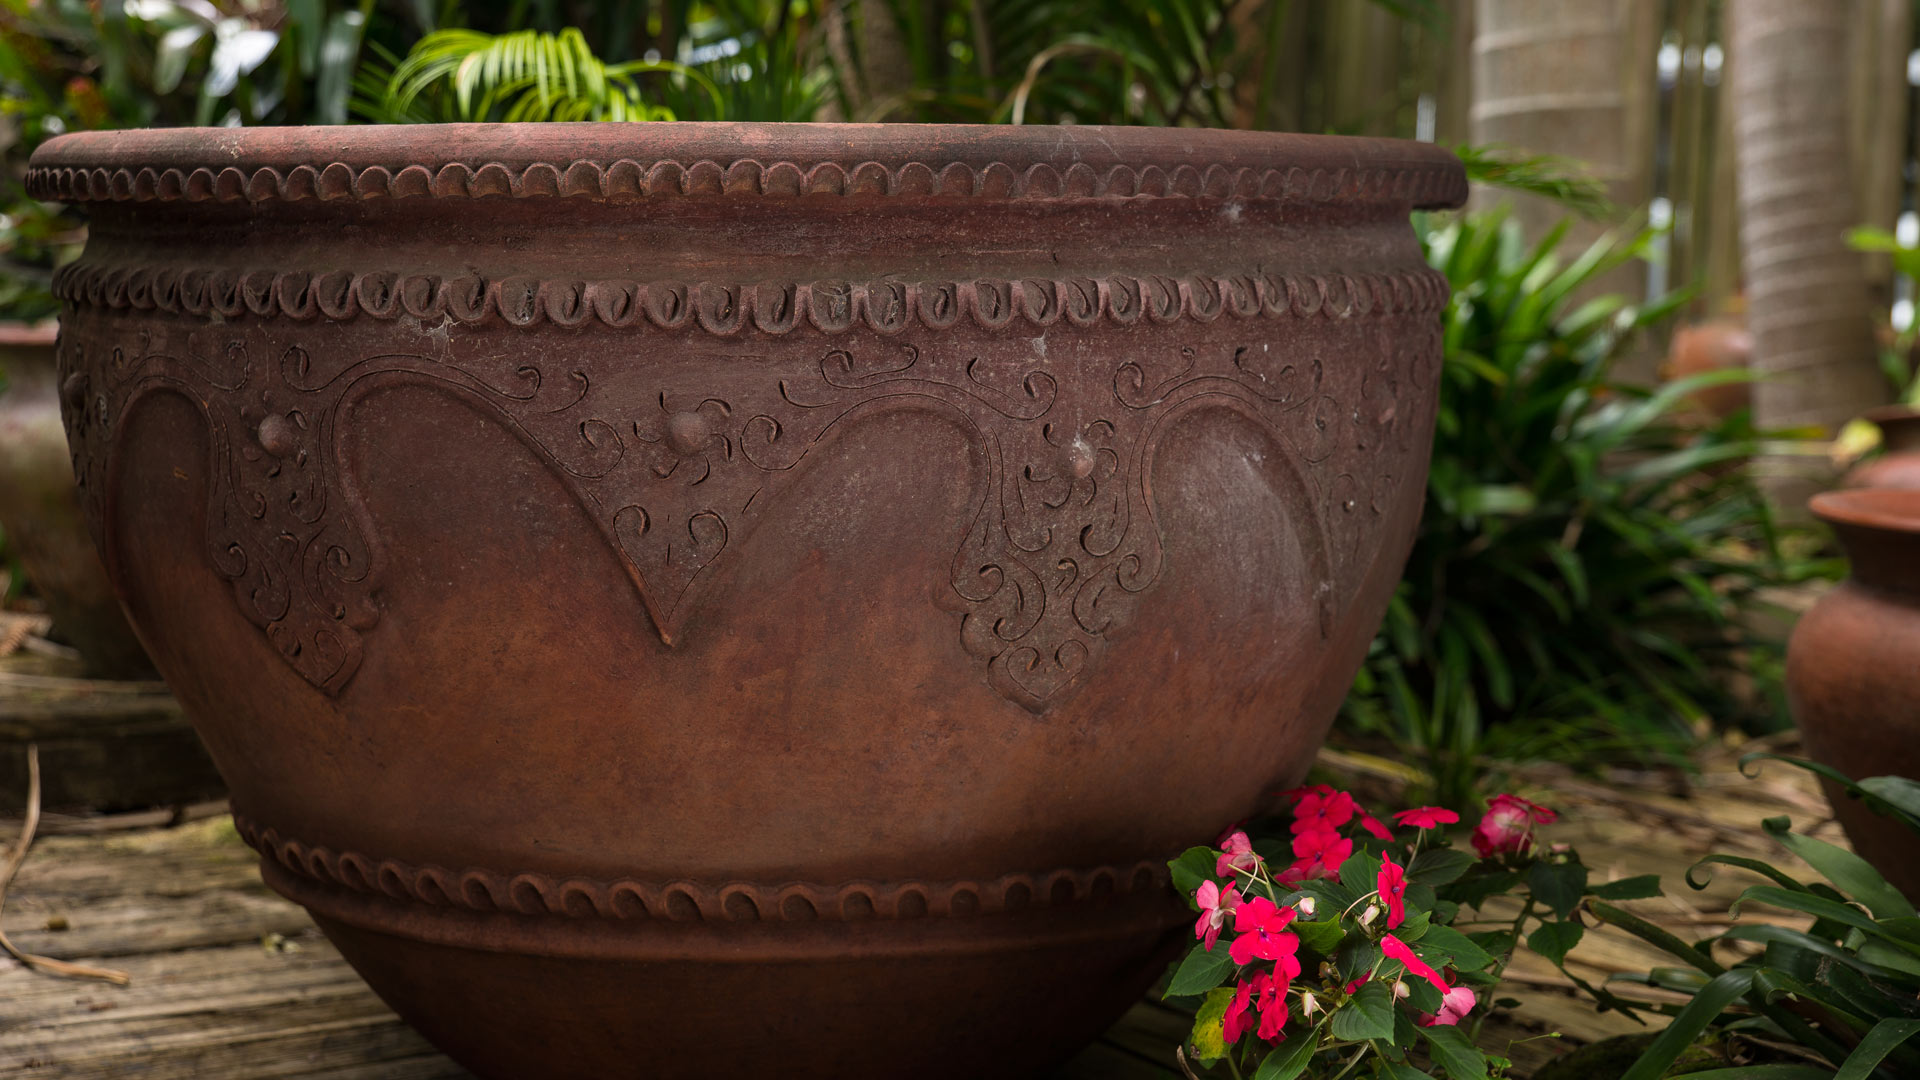 enz-of-the-earth-large-planter-1080-_DSC9972